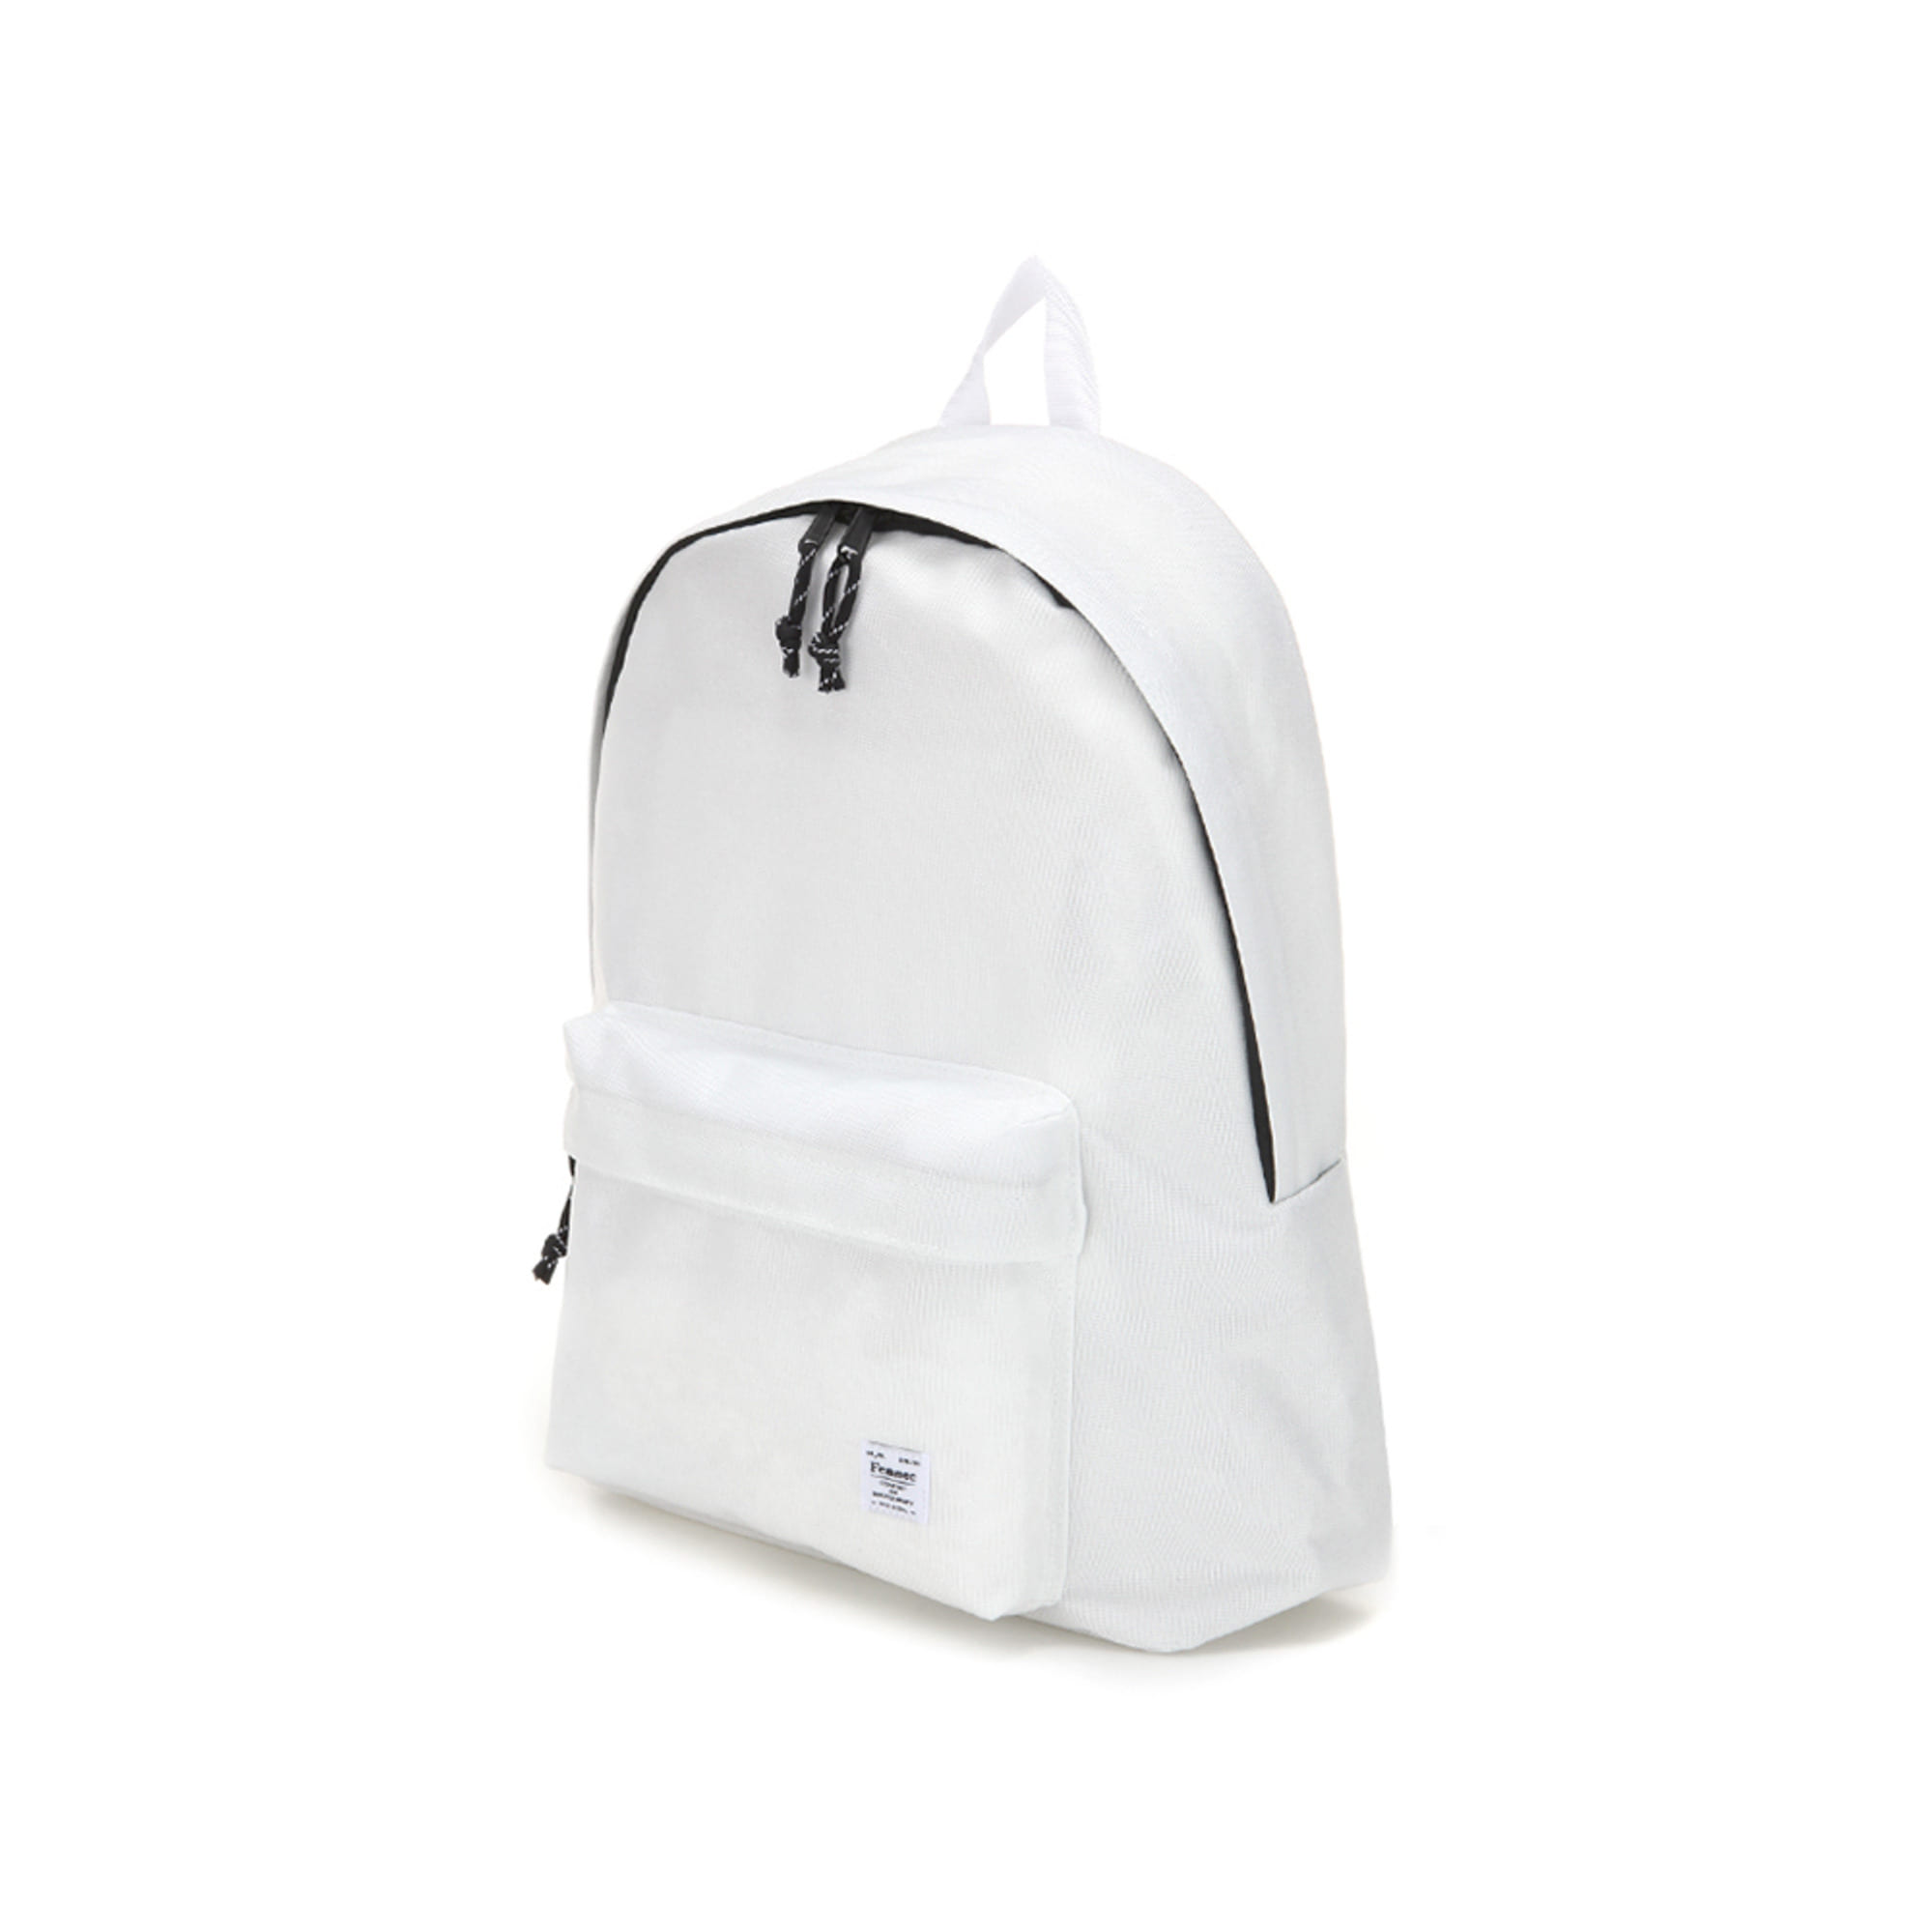 [DISCONTINUE] C&S BACKPACK - WHITE